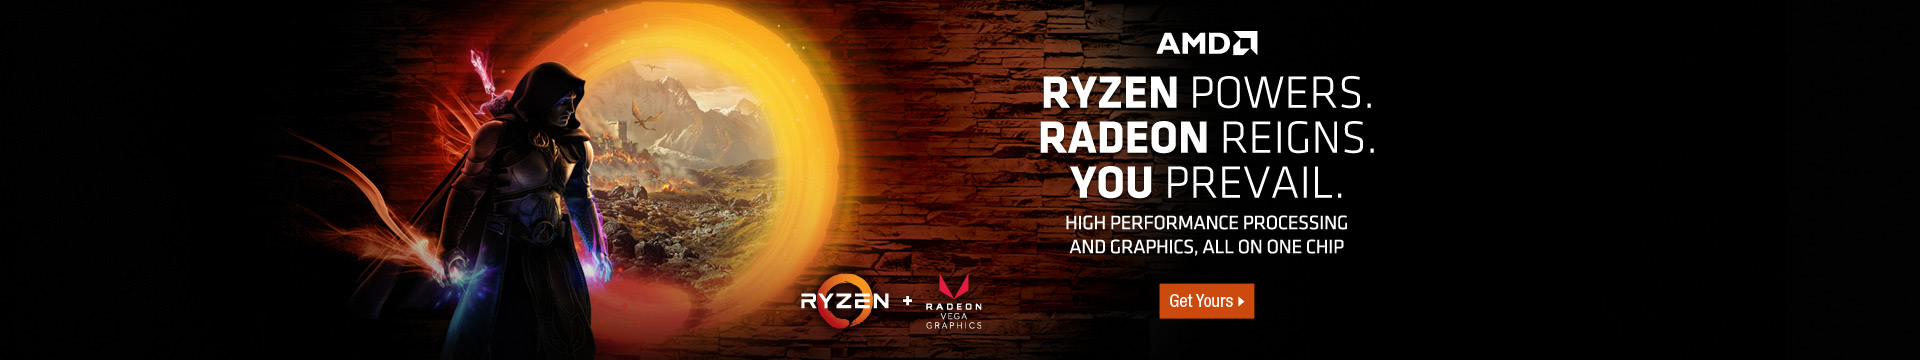 RYZEN POWERS. RADEON REIGNS. YOU PREVAIL